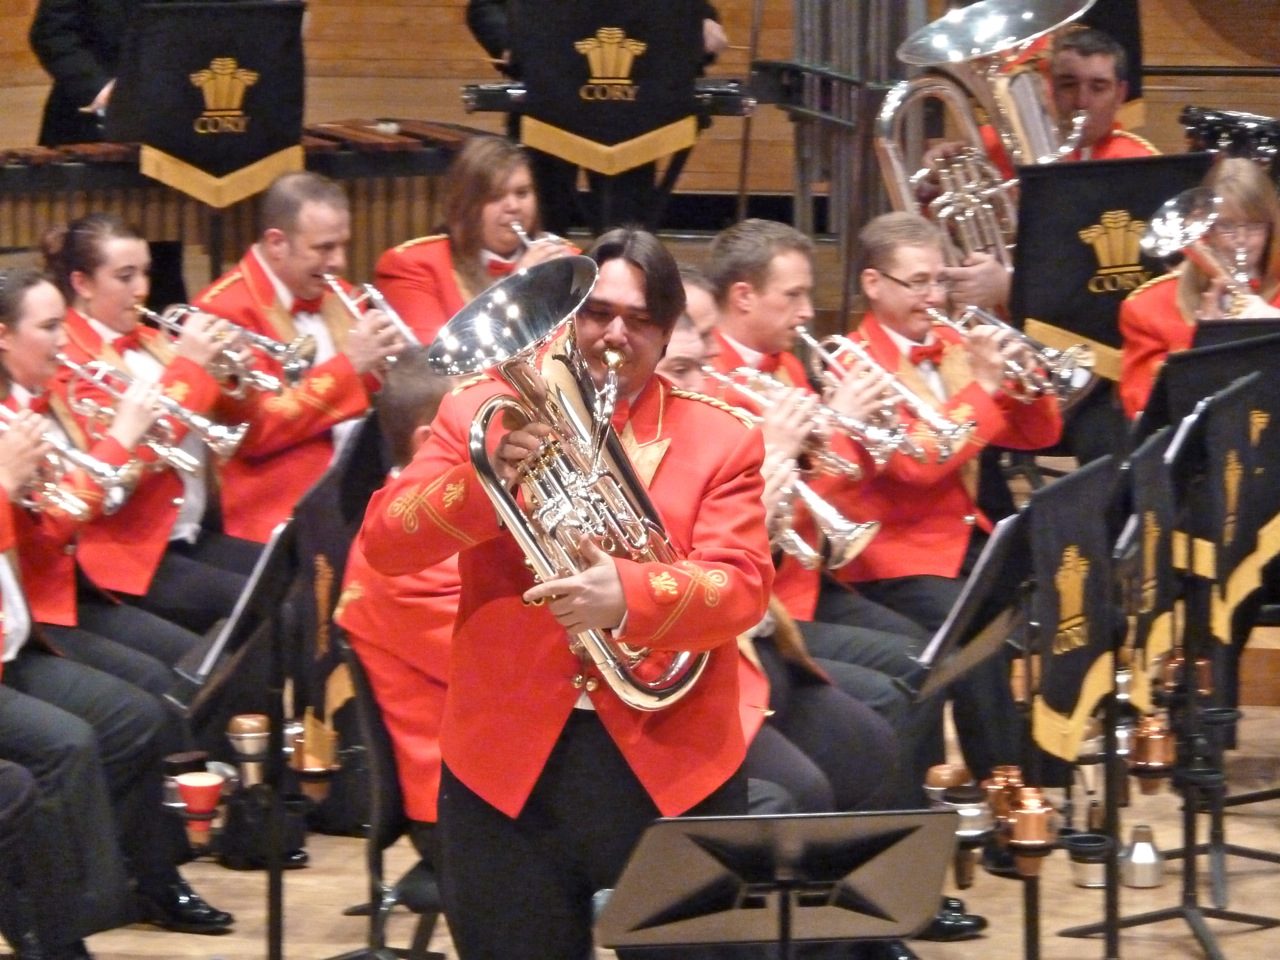 World Premiere BB Version: Dave Childs and The Cory Band, conducted by Bob Childs, January 29th, 2012 at the RNCM Manchester.